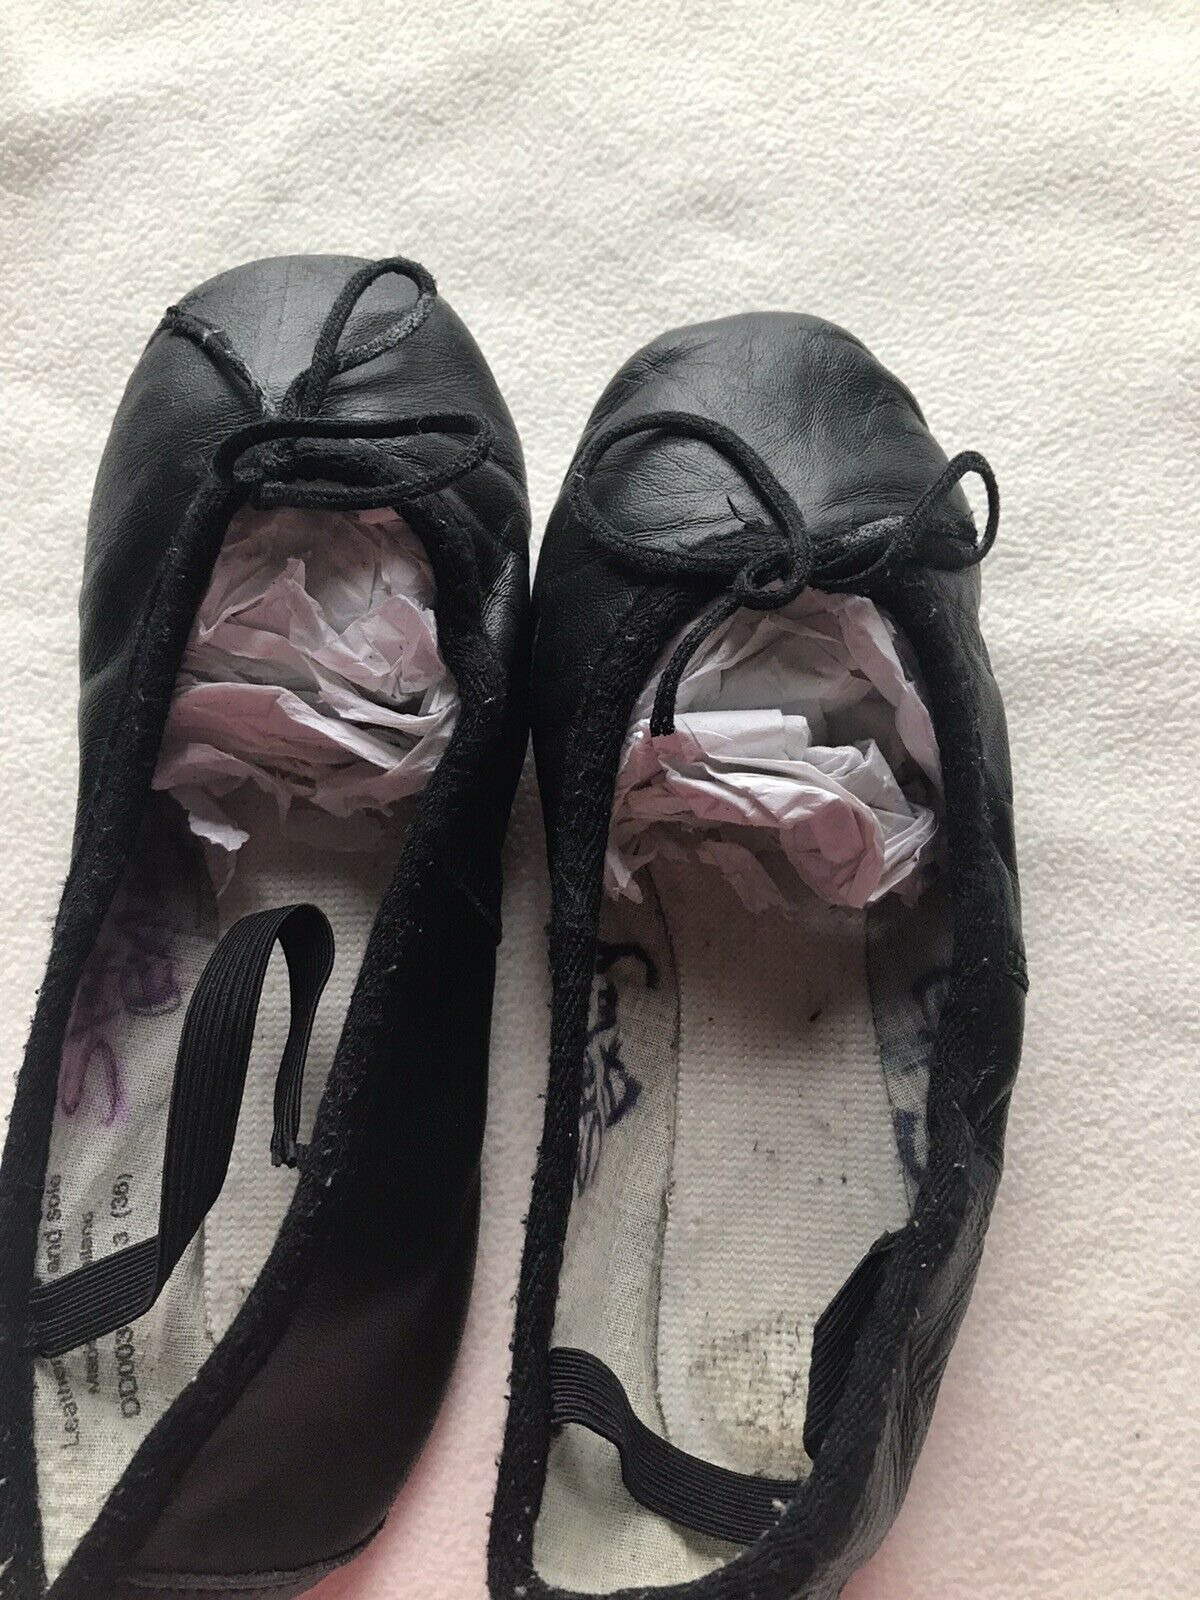 Leather Black Ballet Shoes full sole with attached elastics